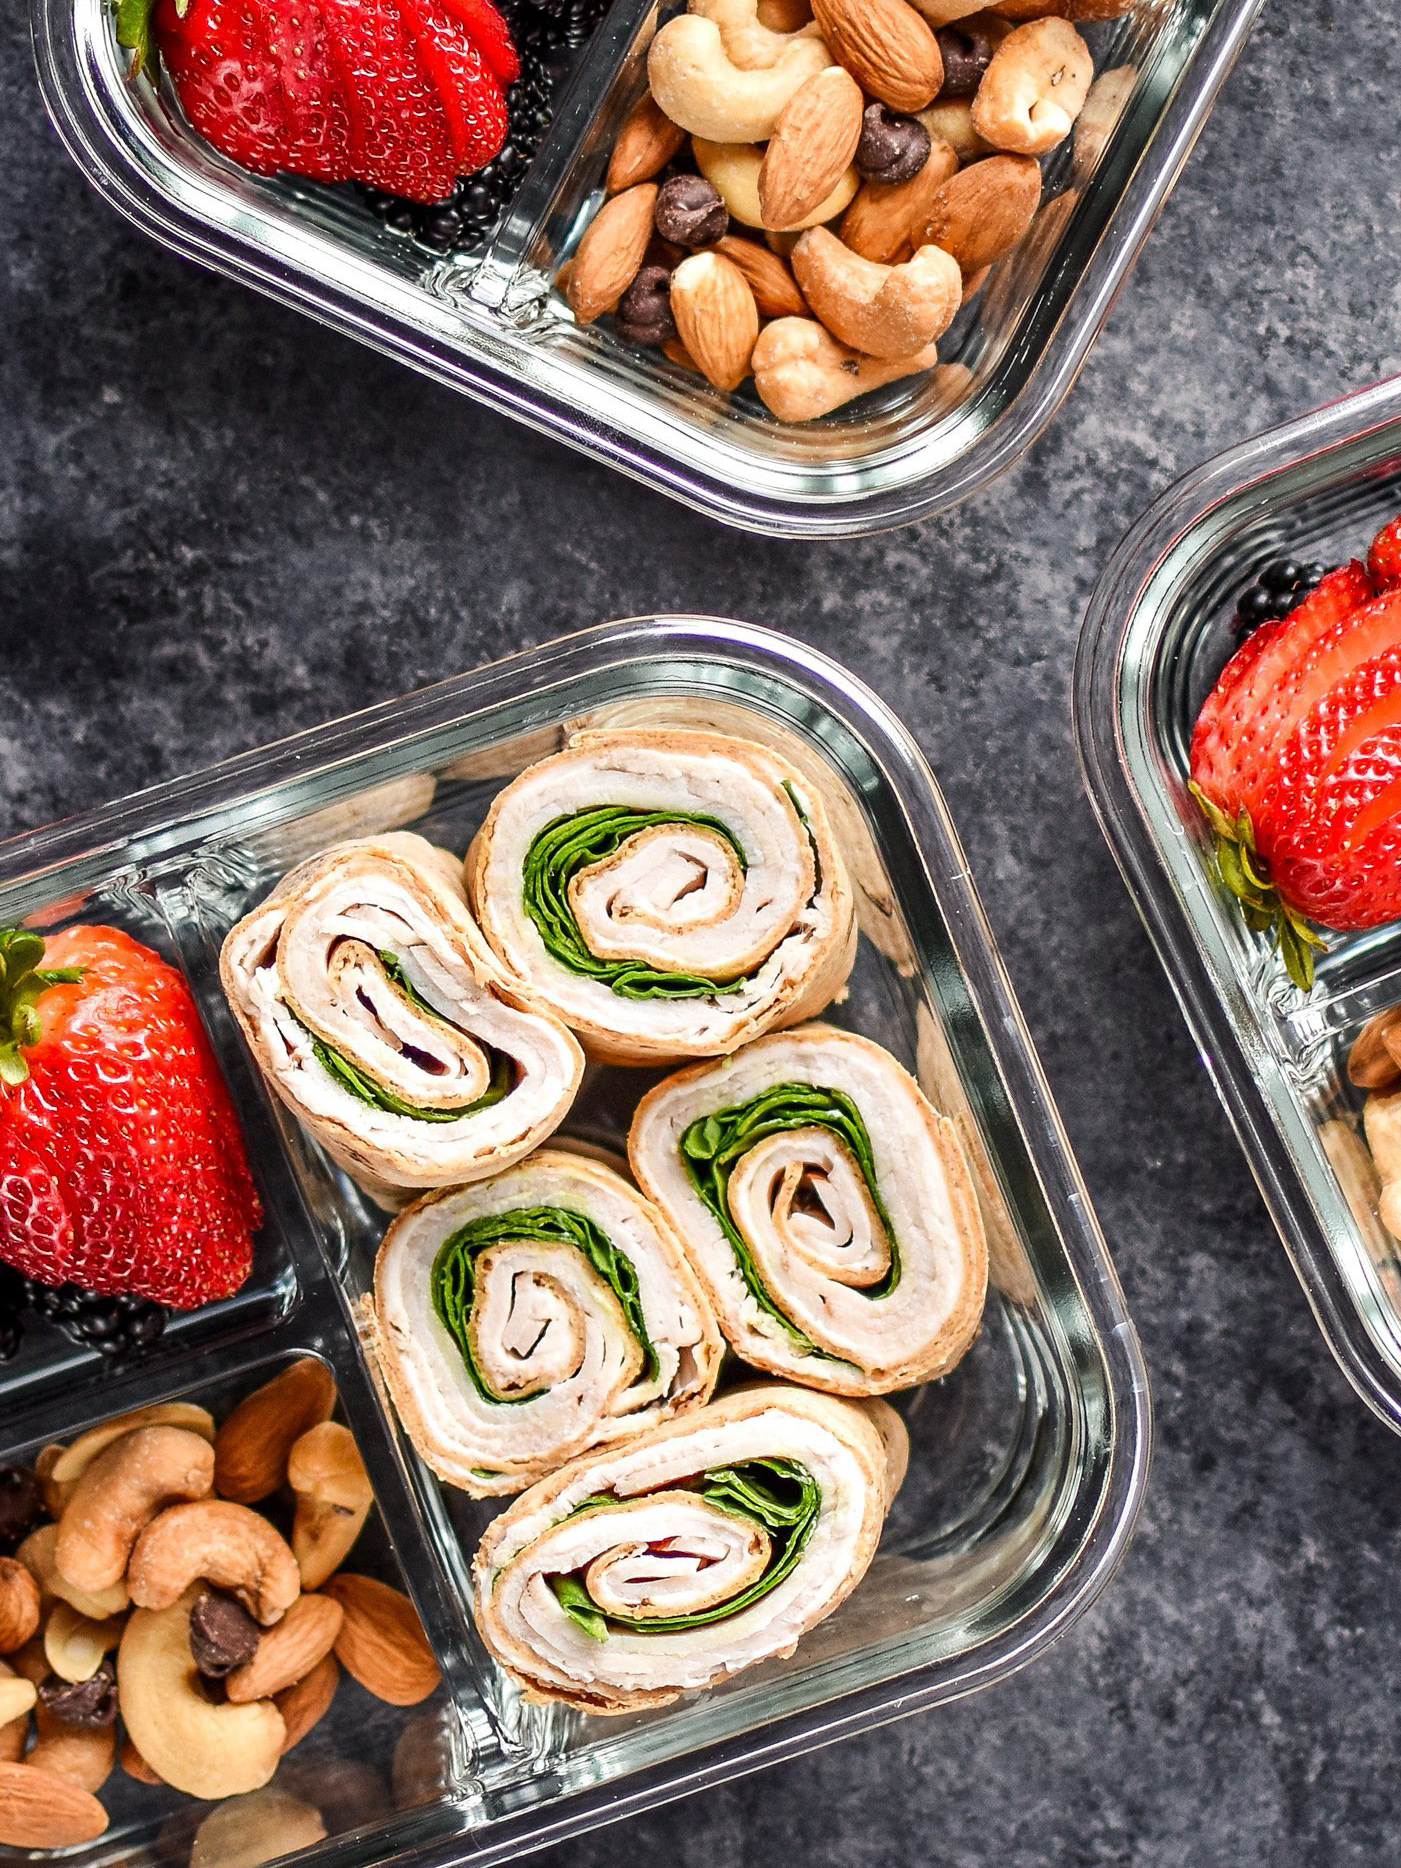 Turkey pinwheels prepped for lunches, a meal prep lunch recipe